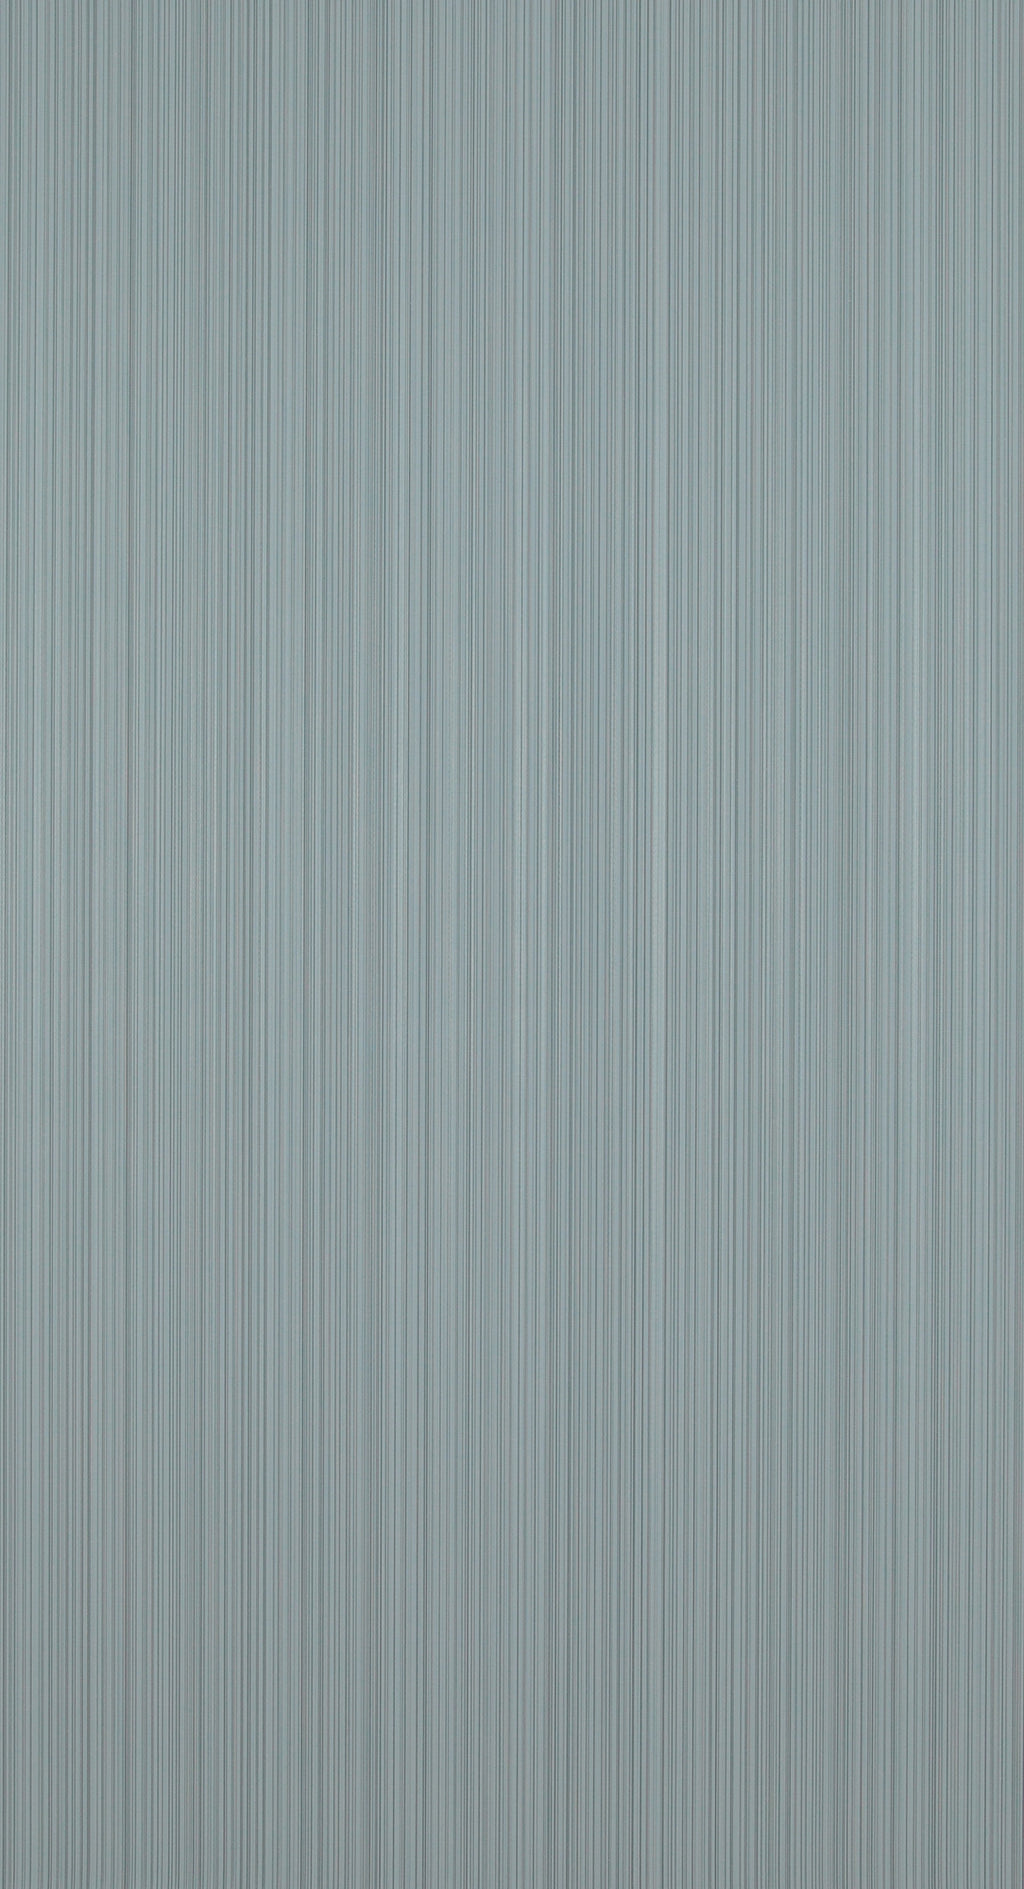 Steel Grey Fold Wallpaper C7188 | Commercial & Hospitality